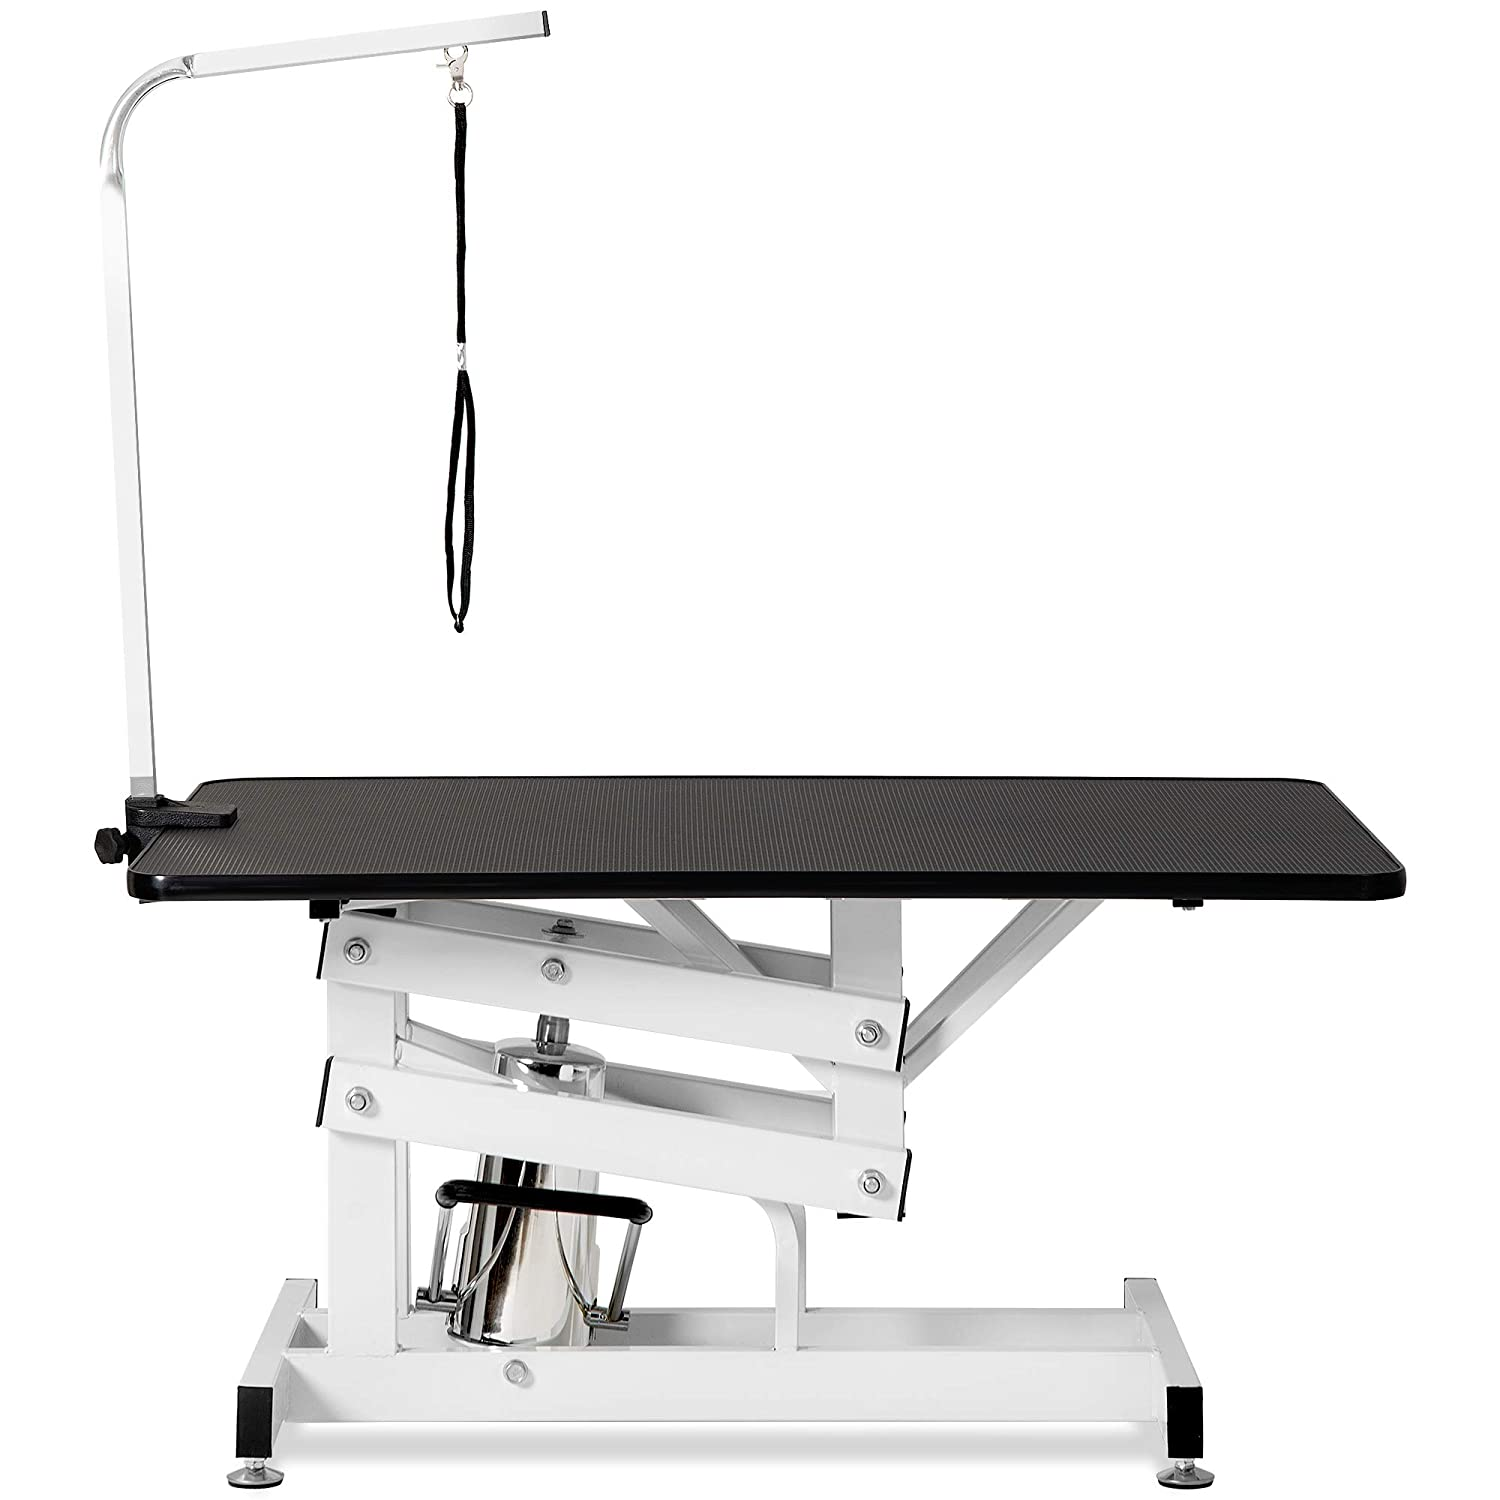 puppykitty Z-Lift Hydraulic Pet Grooming Table